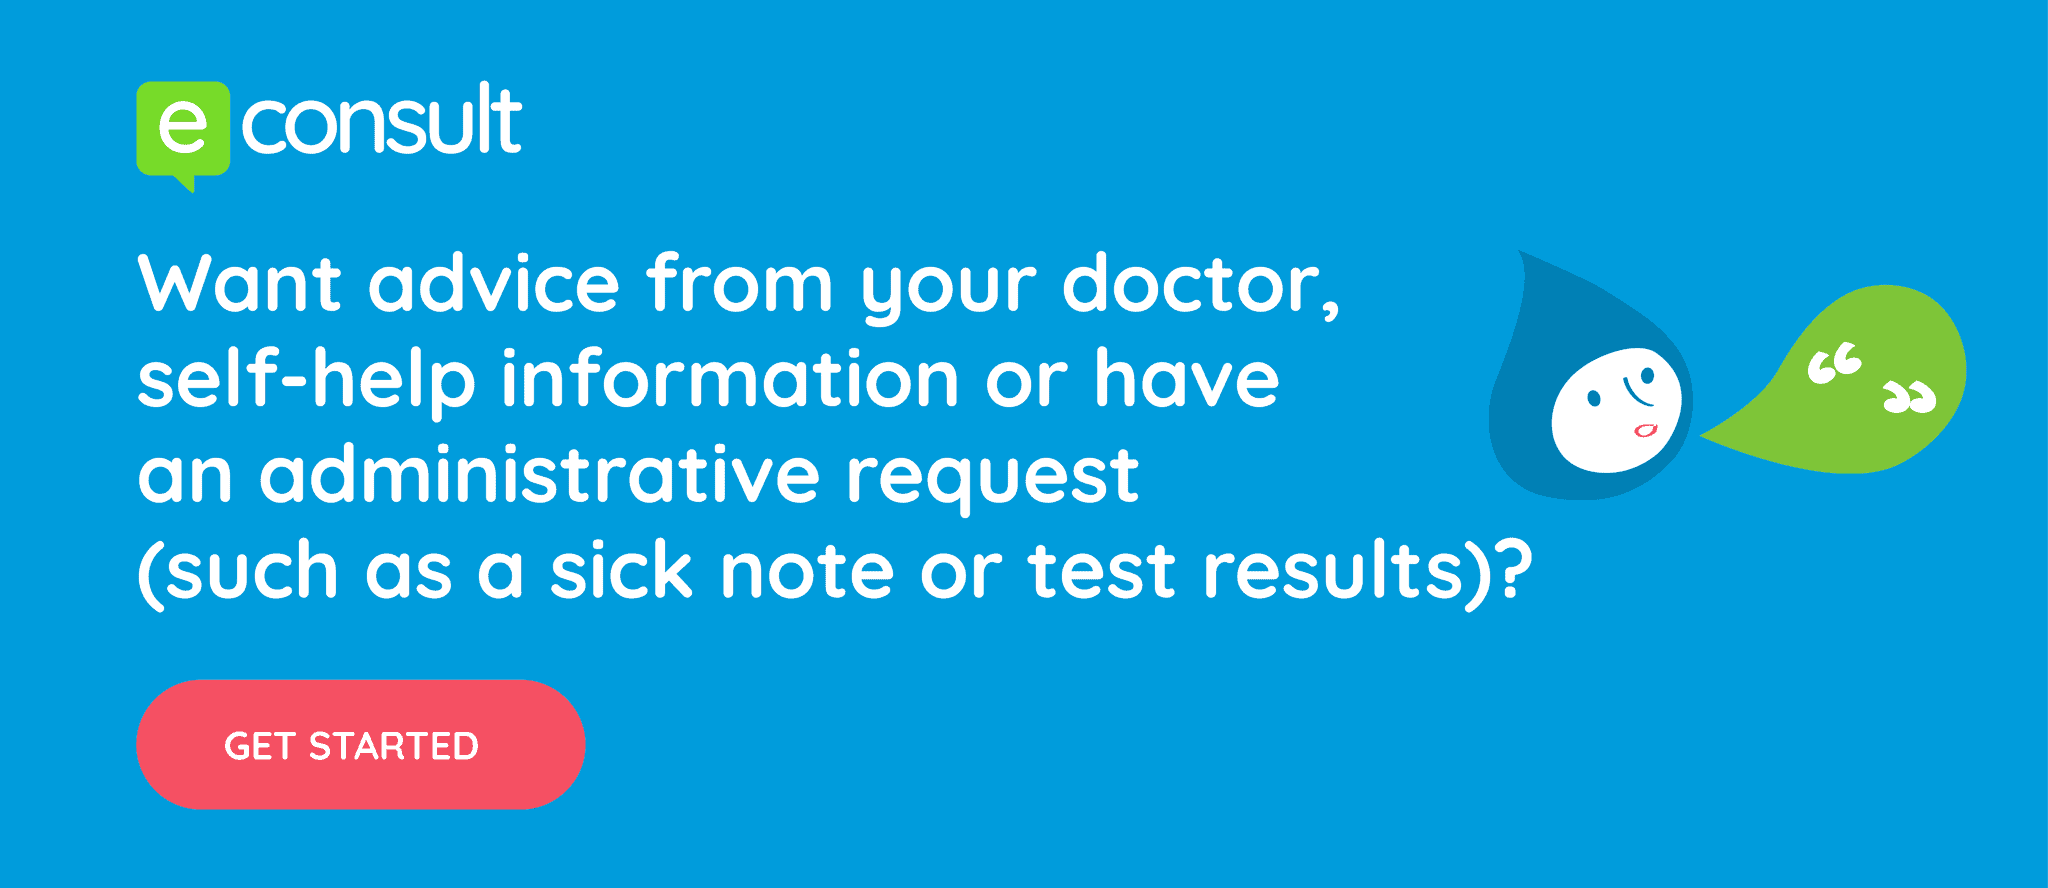 Want advice from your doctor, self-help information or have an administrative request?